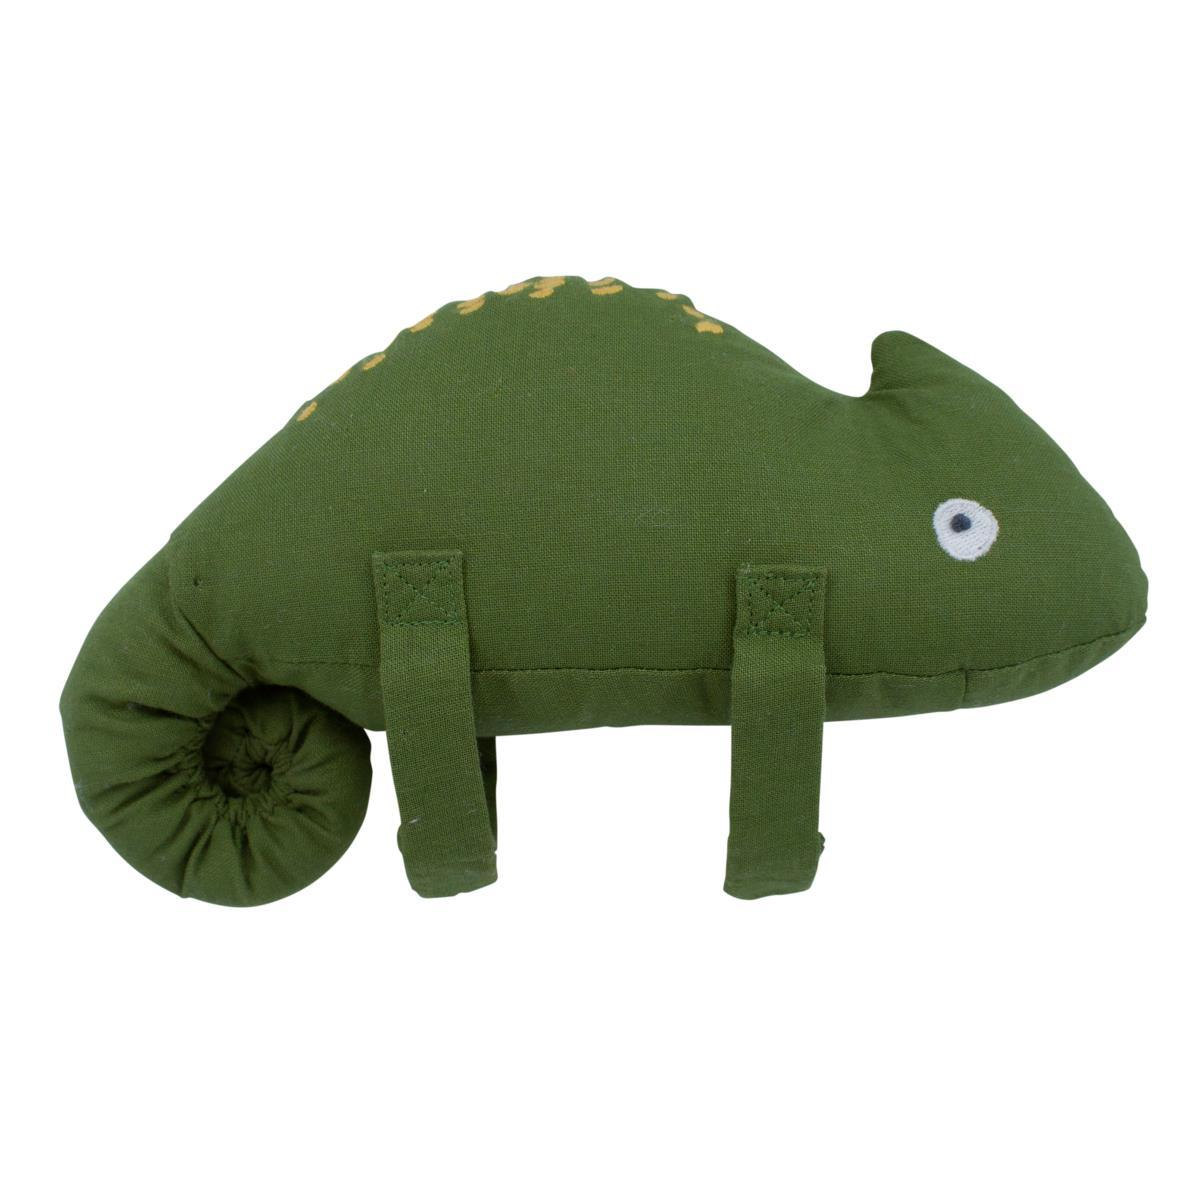 Sebra Musical Pull Toy - Carley The Chameleon